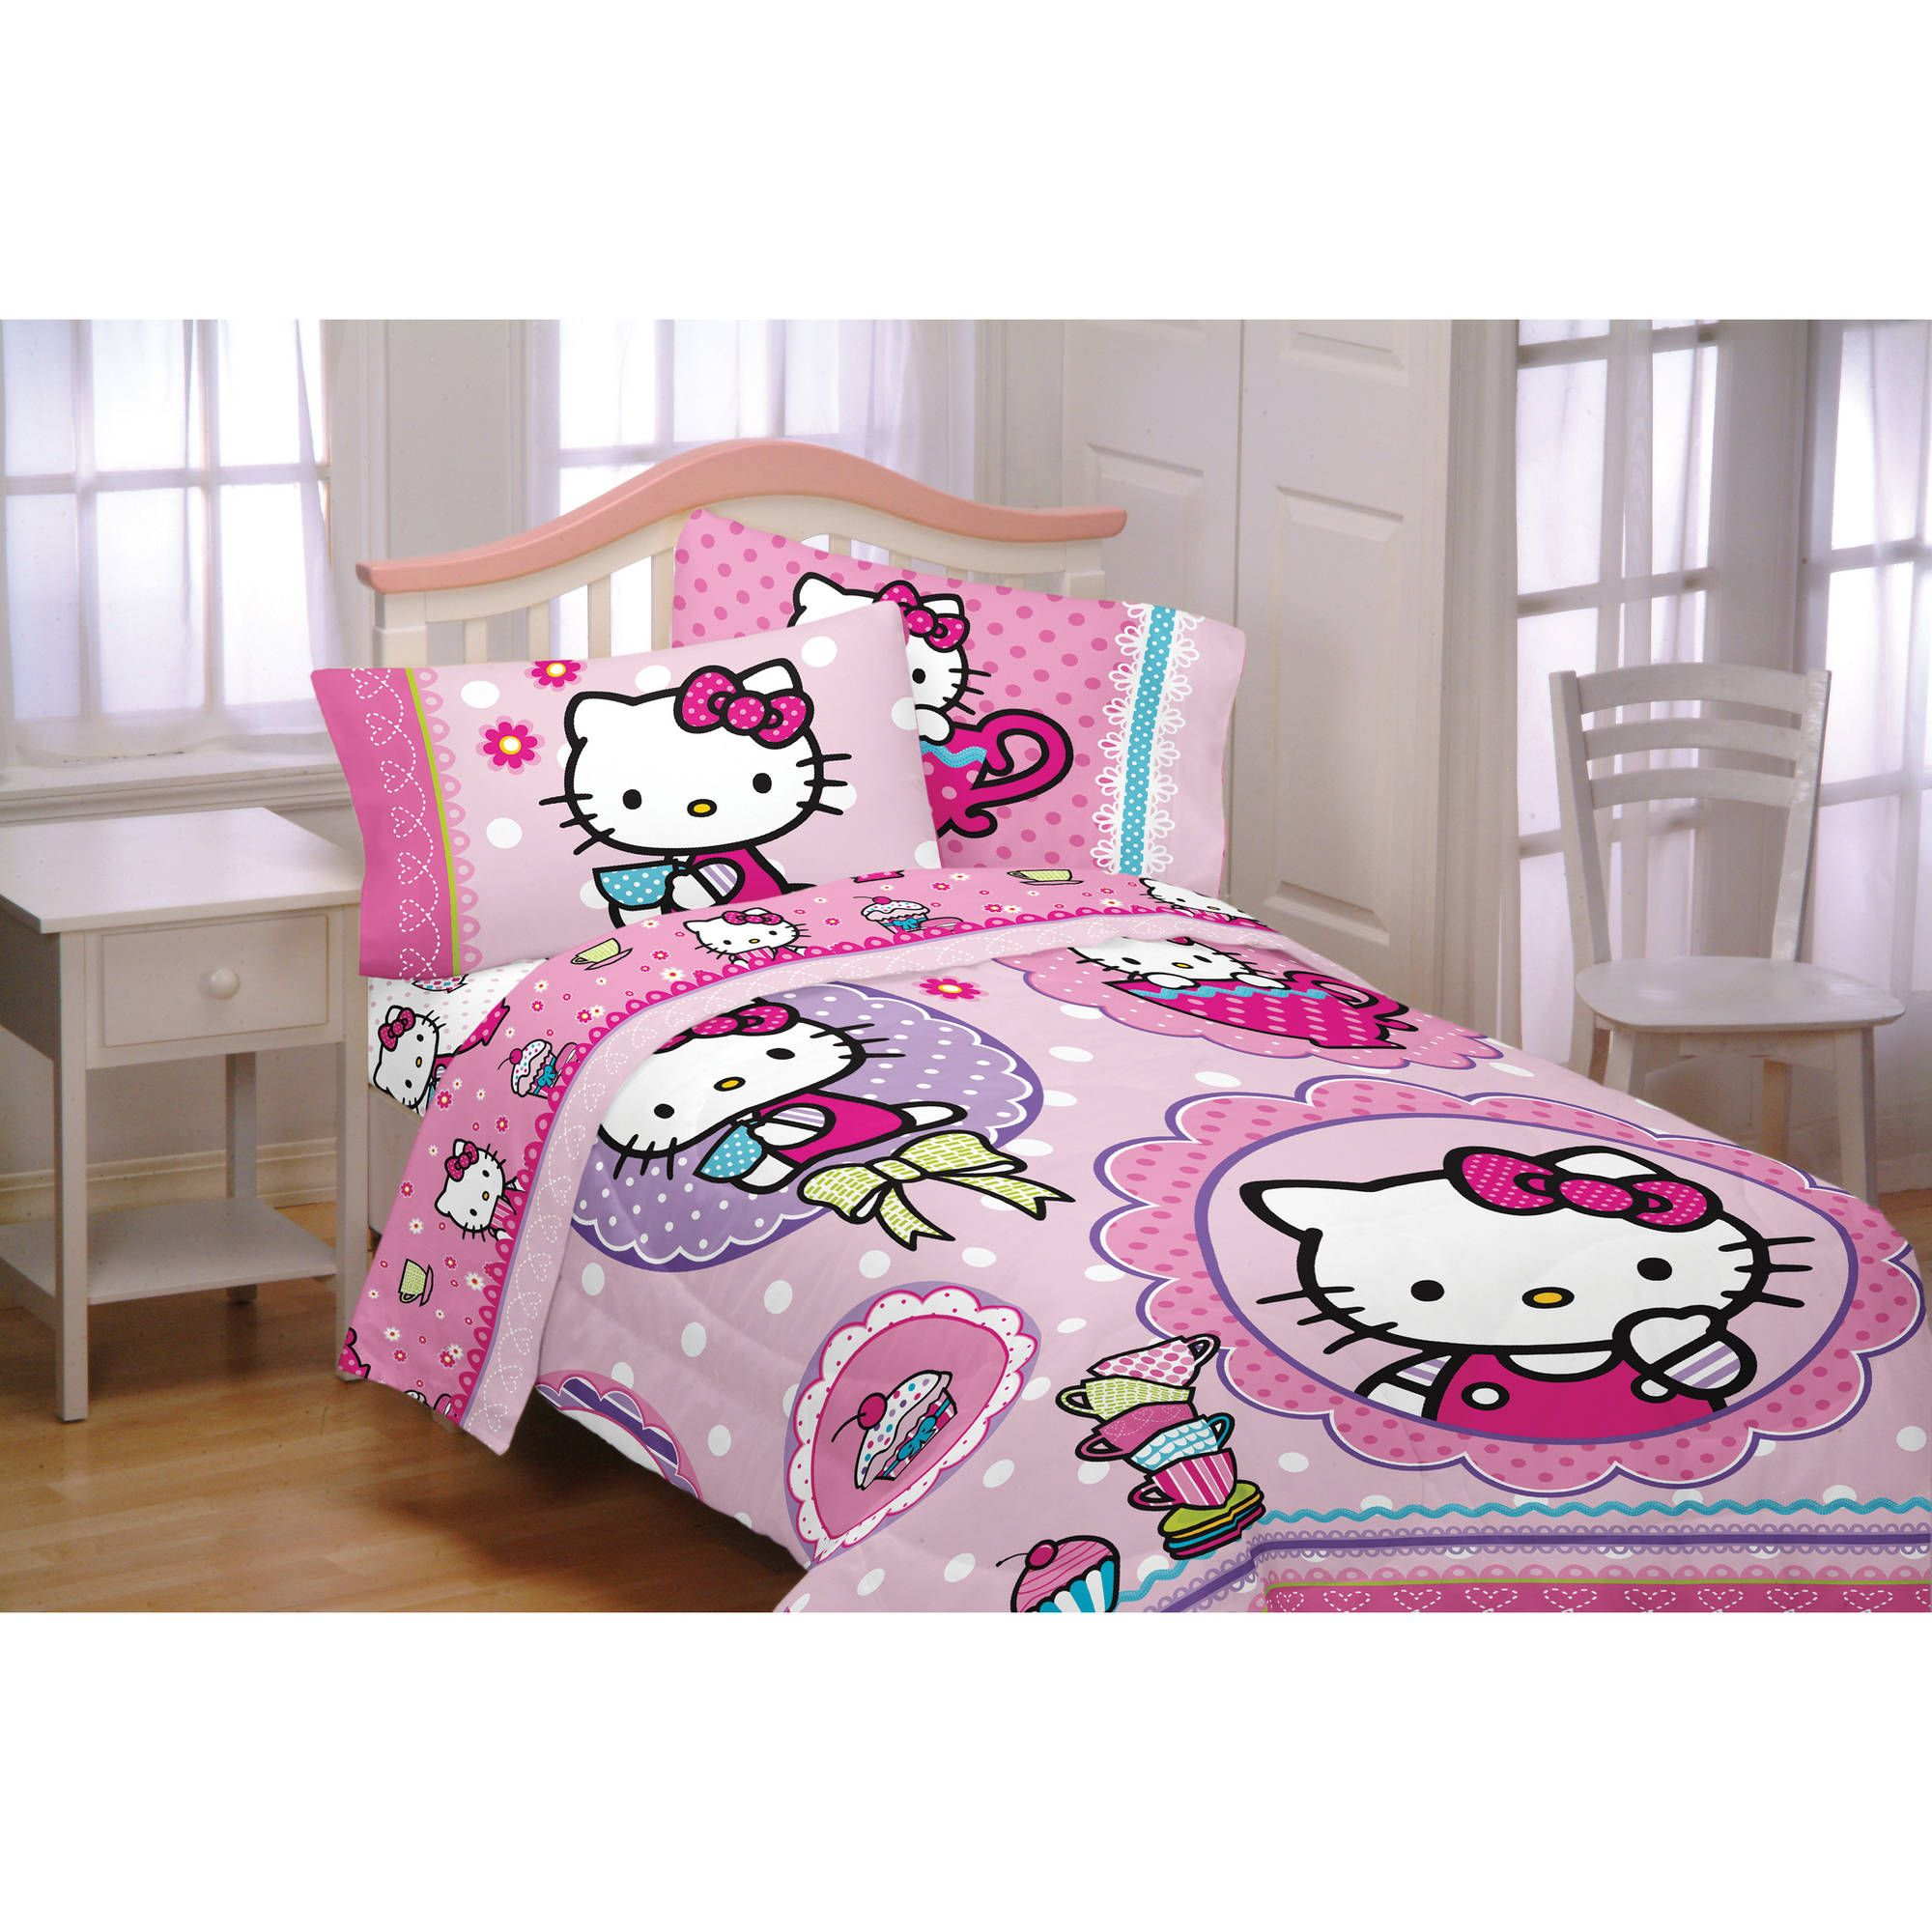 set walmart in of bag bed att com mainstays charming pretty a bedding twin comforter photo x kids princess